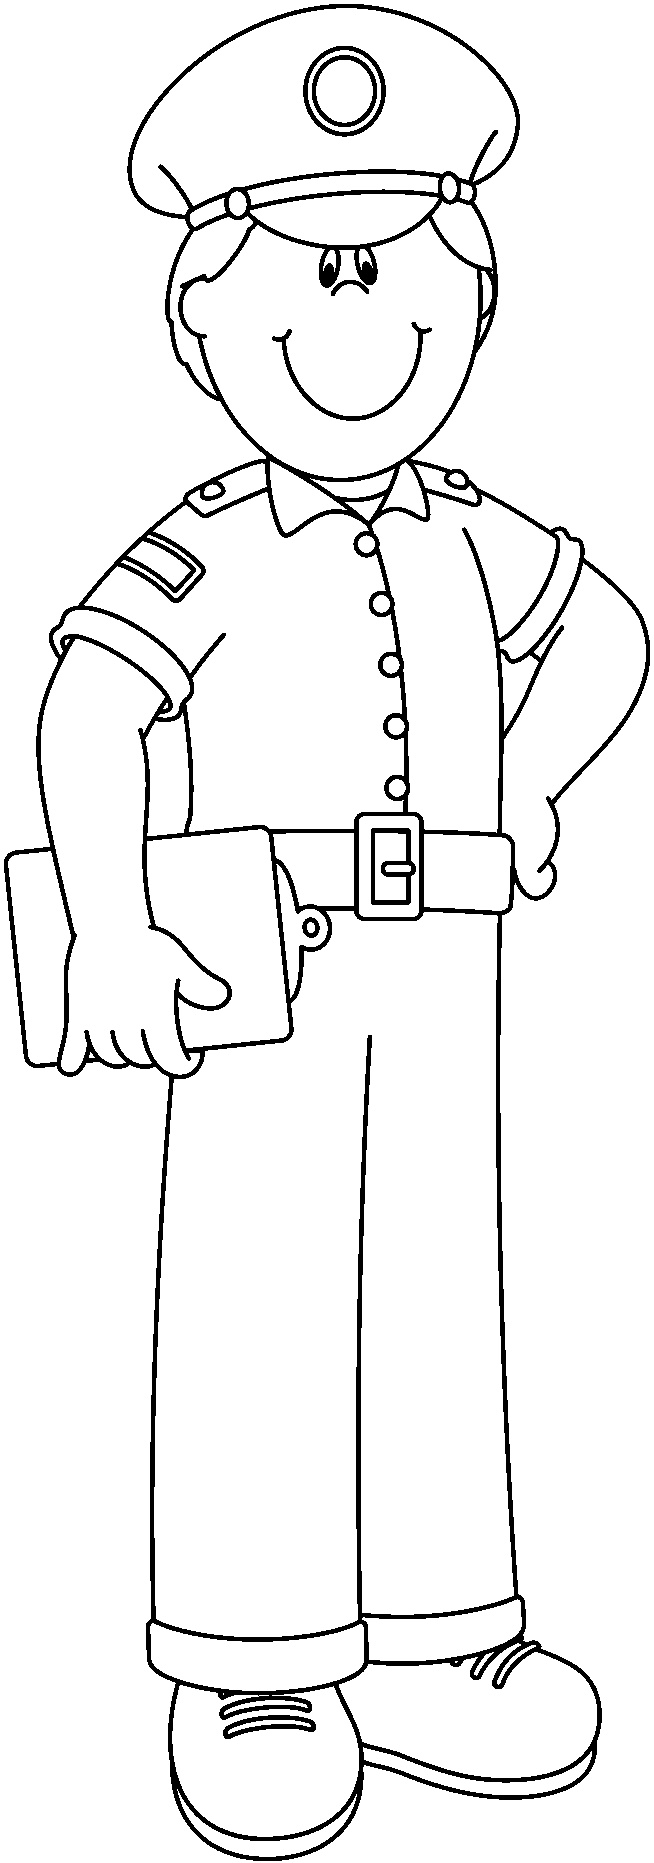 coloring community helpers clipart black and white doctor clipart black and white clip art library white and coloring helpers black clipart community